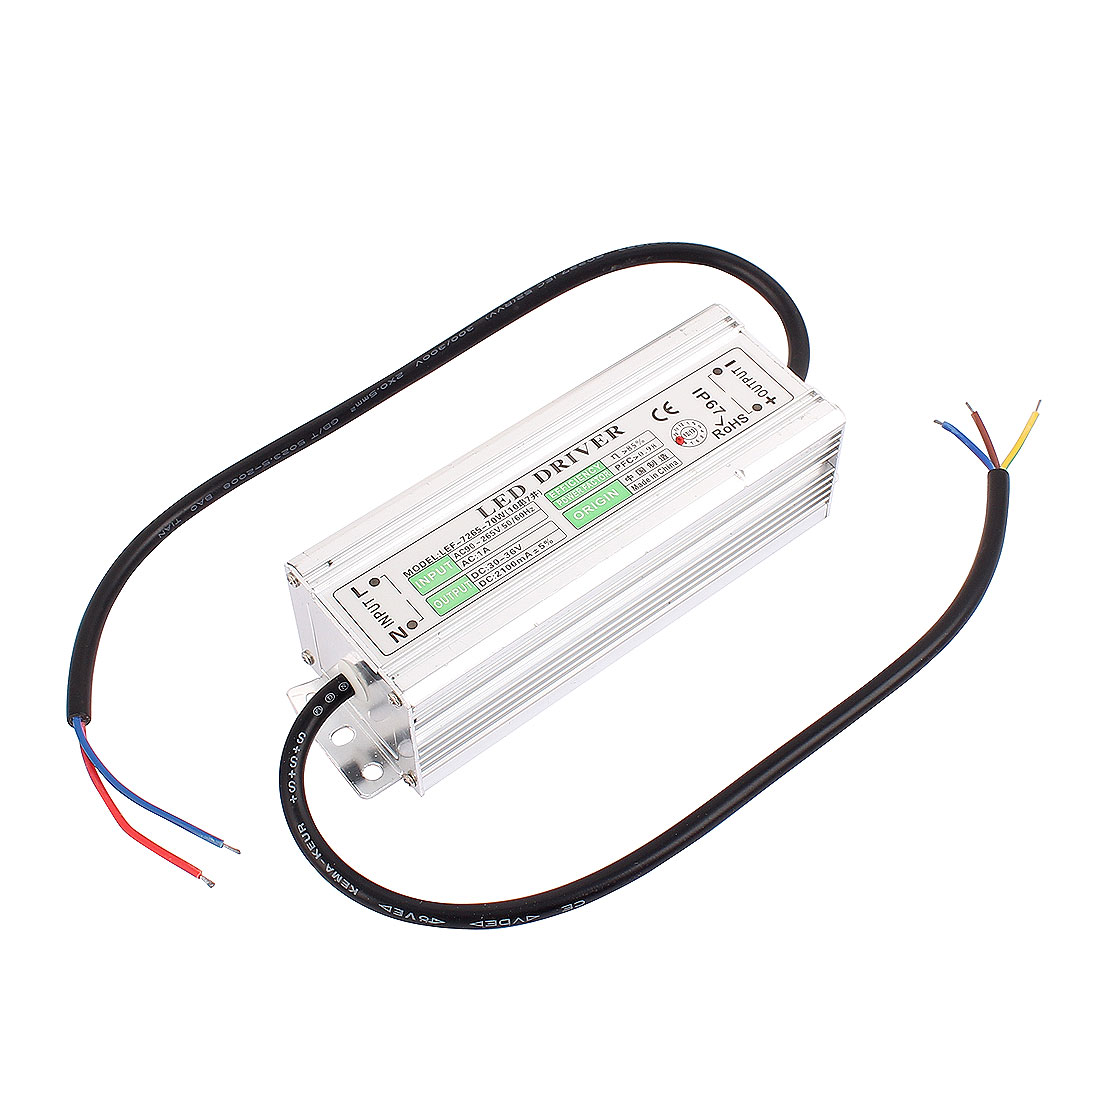 AC90-265V to DC 30-36V 70W Transformer IP67 Waterproof LED Driver Power Supply